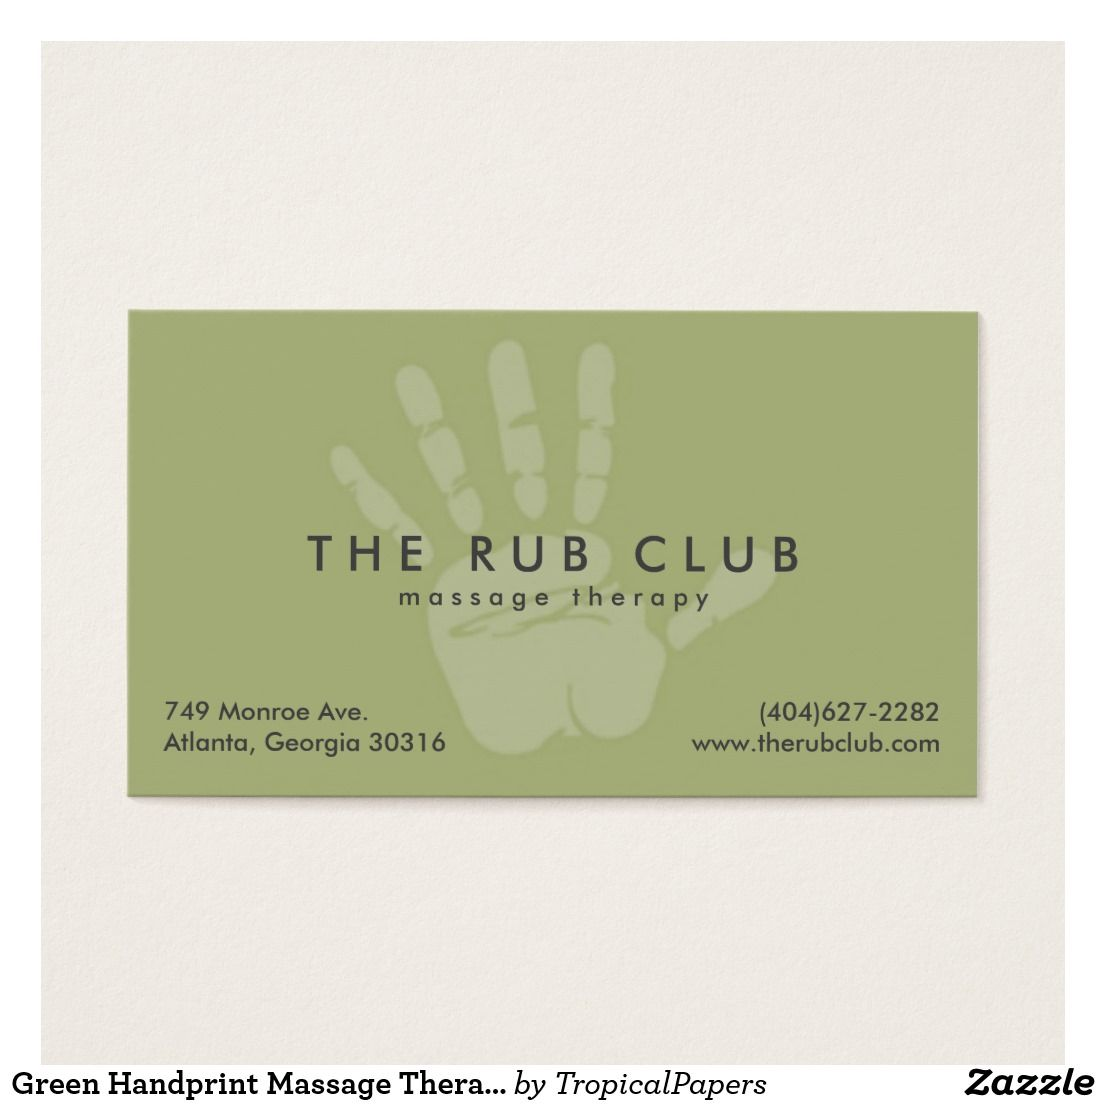 Green Handprint Massage Therapy Business Card